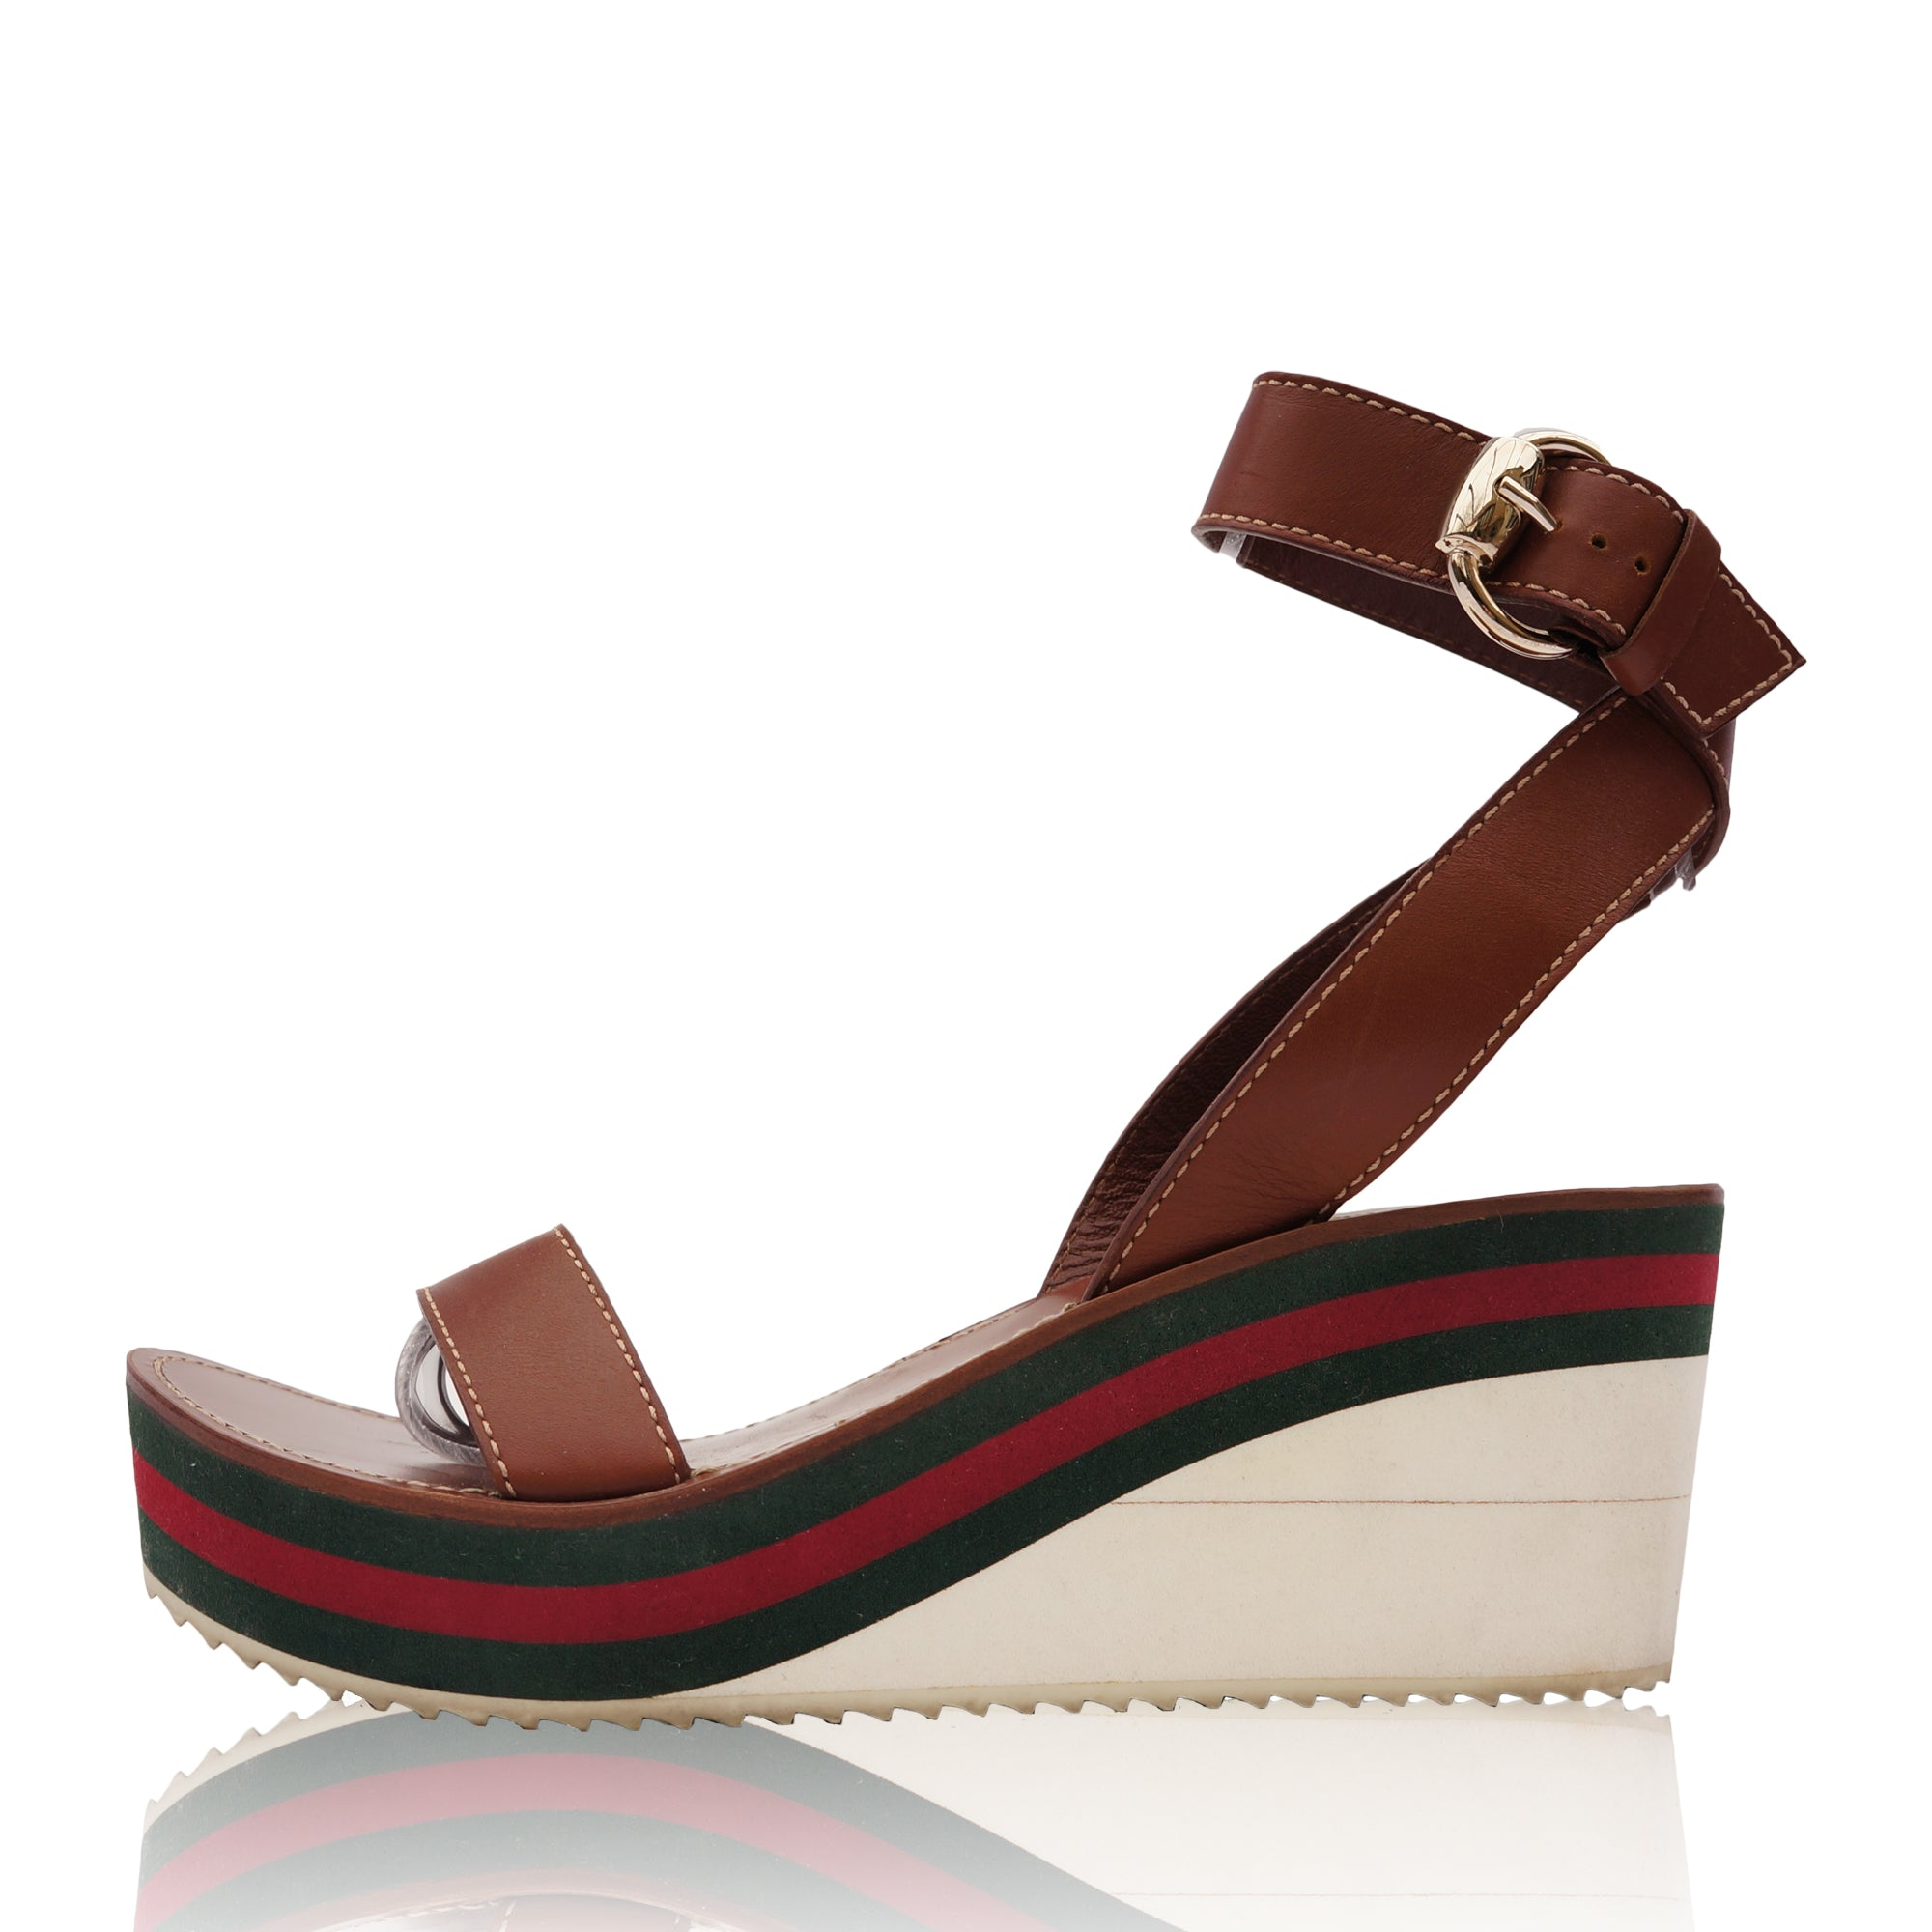 89f0c07031a5 GUCCI WEB LEATHER WEDGE SANDAL Shop online the best value on authentic  designer used preowned consignment ...